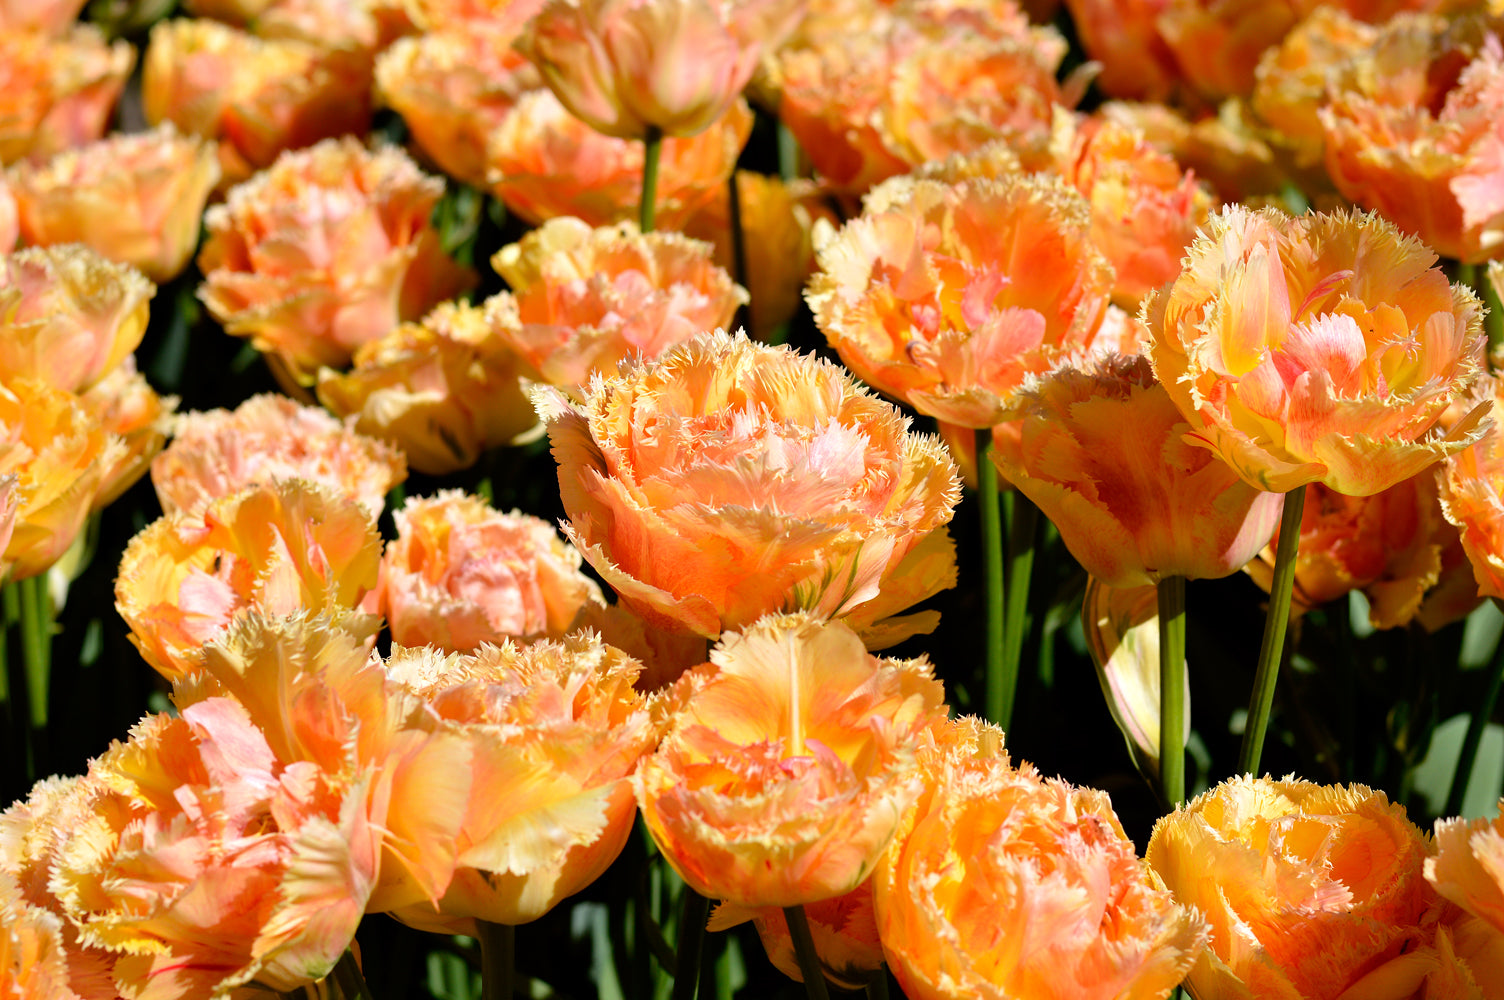 A simple guide to growing beautiful tulips from bulbs